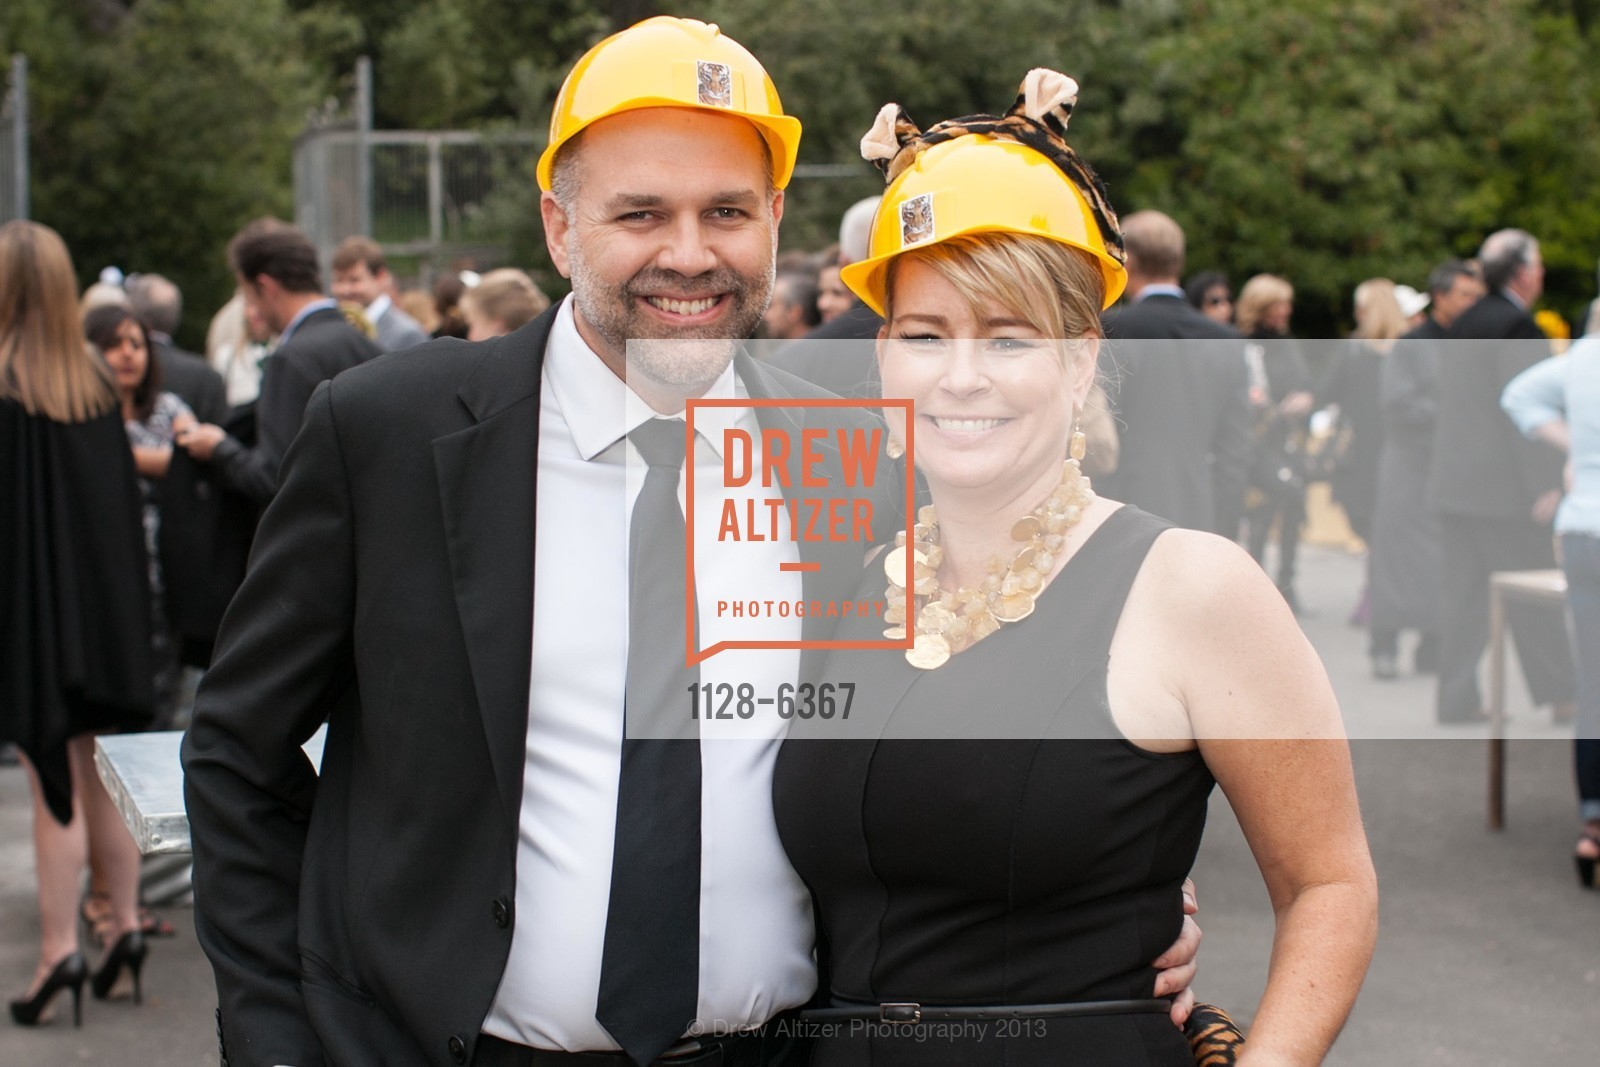 David Lenihan, Sarah Gammill, ZooFest 2013 Hard Hat & Tails, US, May 11th, 2013,Drew Altizer, Drew Altizer Photography, full-service agency, private events, San Francisco photographer, photographer california